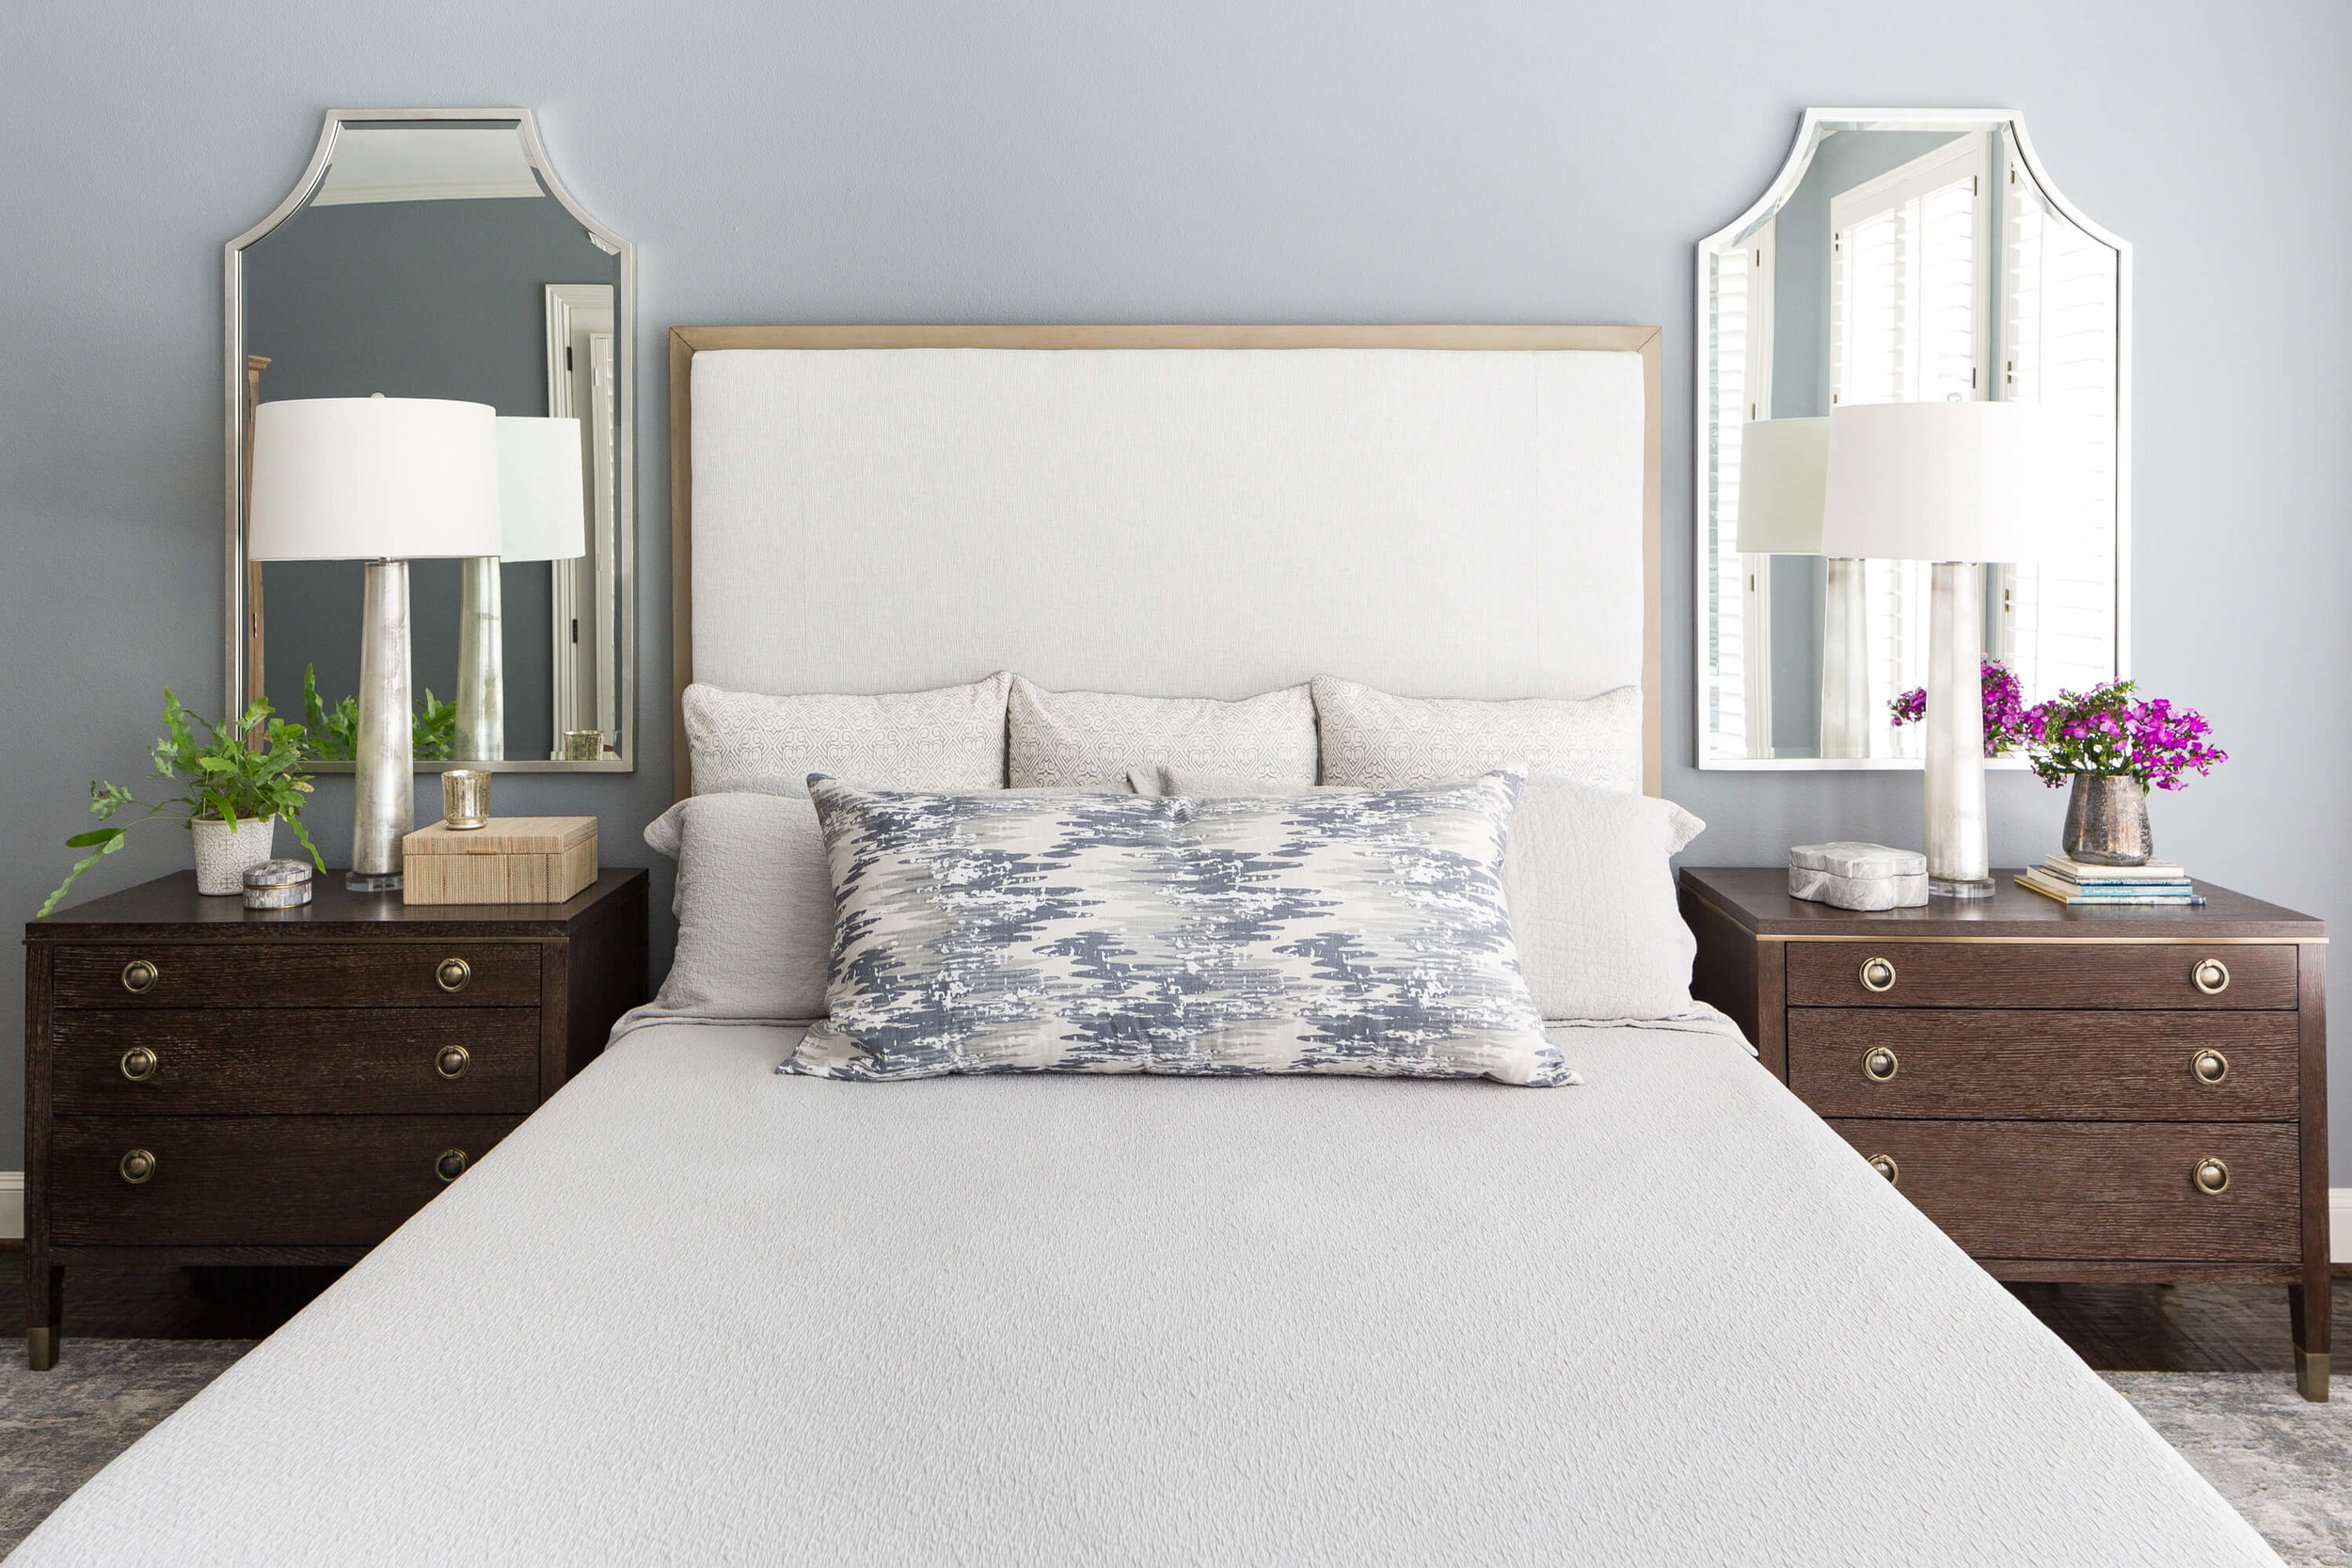 This soothing master bedroom makeover uses a cool blue-gray color palette with dark wood tones in the nightstands to anchor the look of the headboard wall. Carla Aston, Designer | Colleen Scott, Photographer